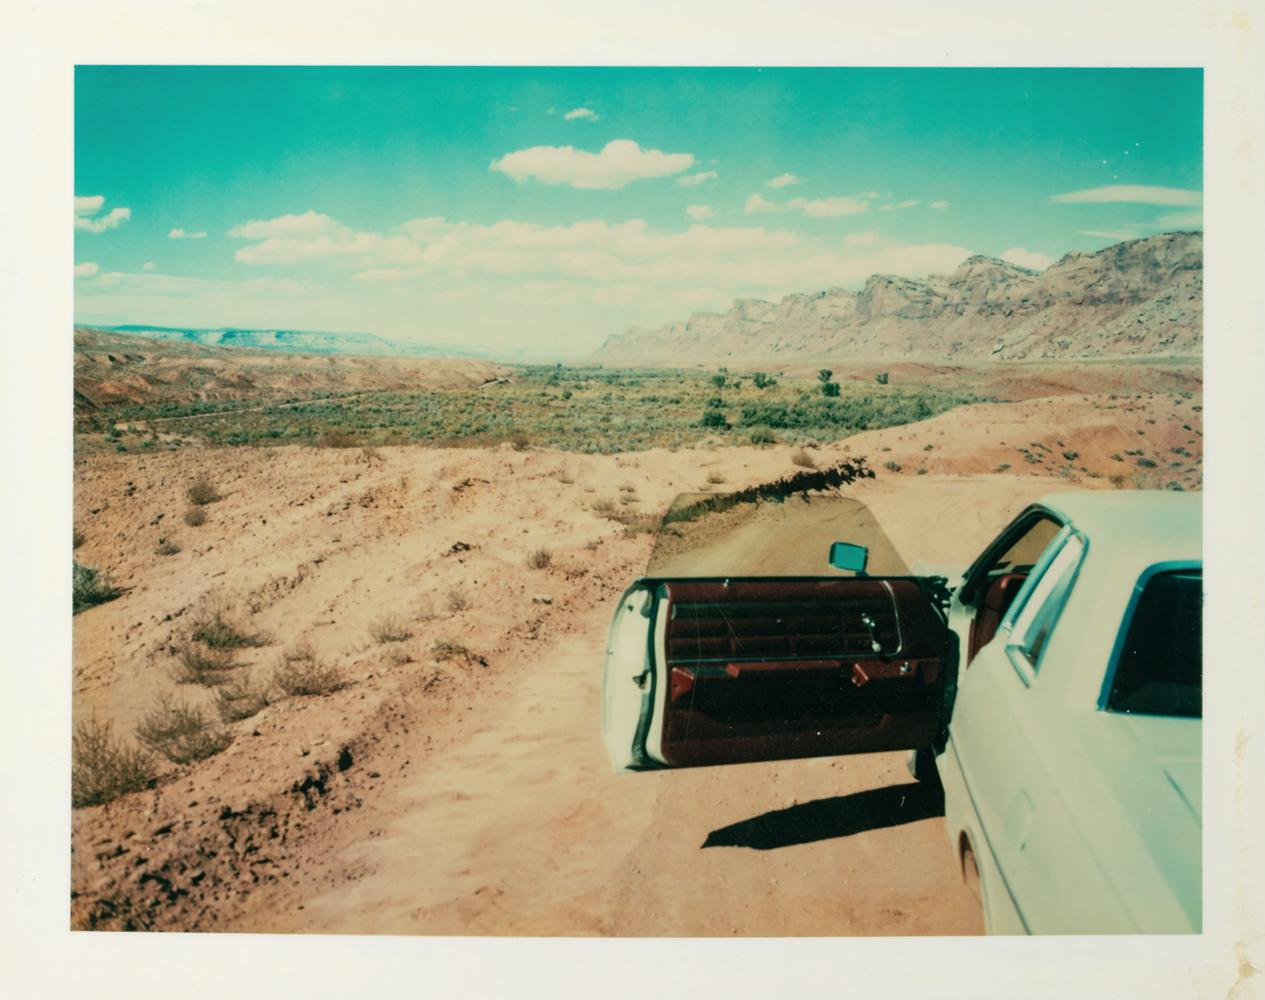 © Wim Wenders, Courtesy of the artist